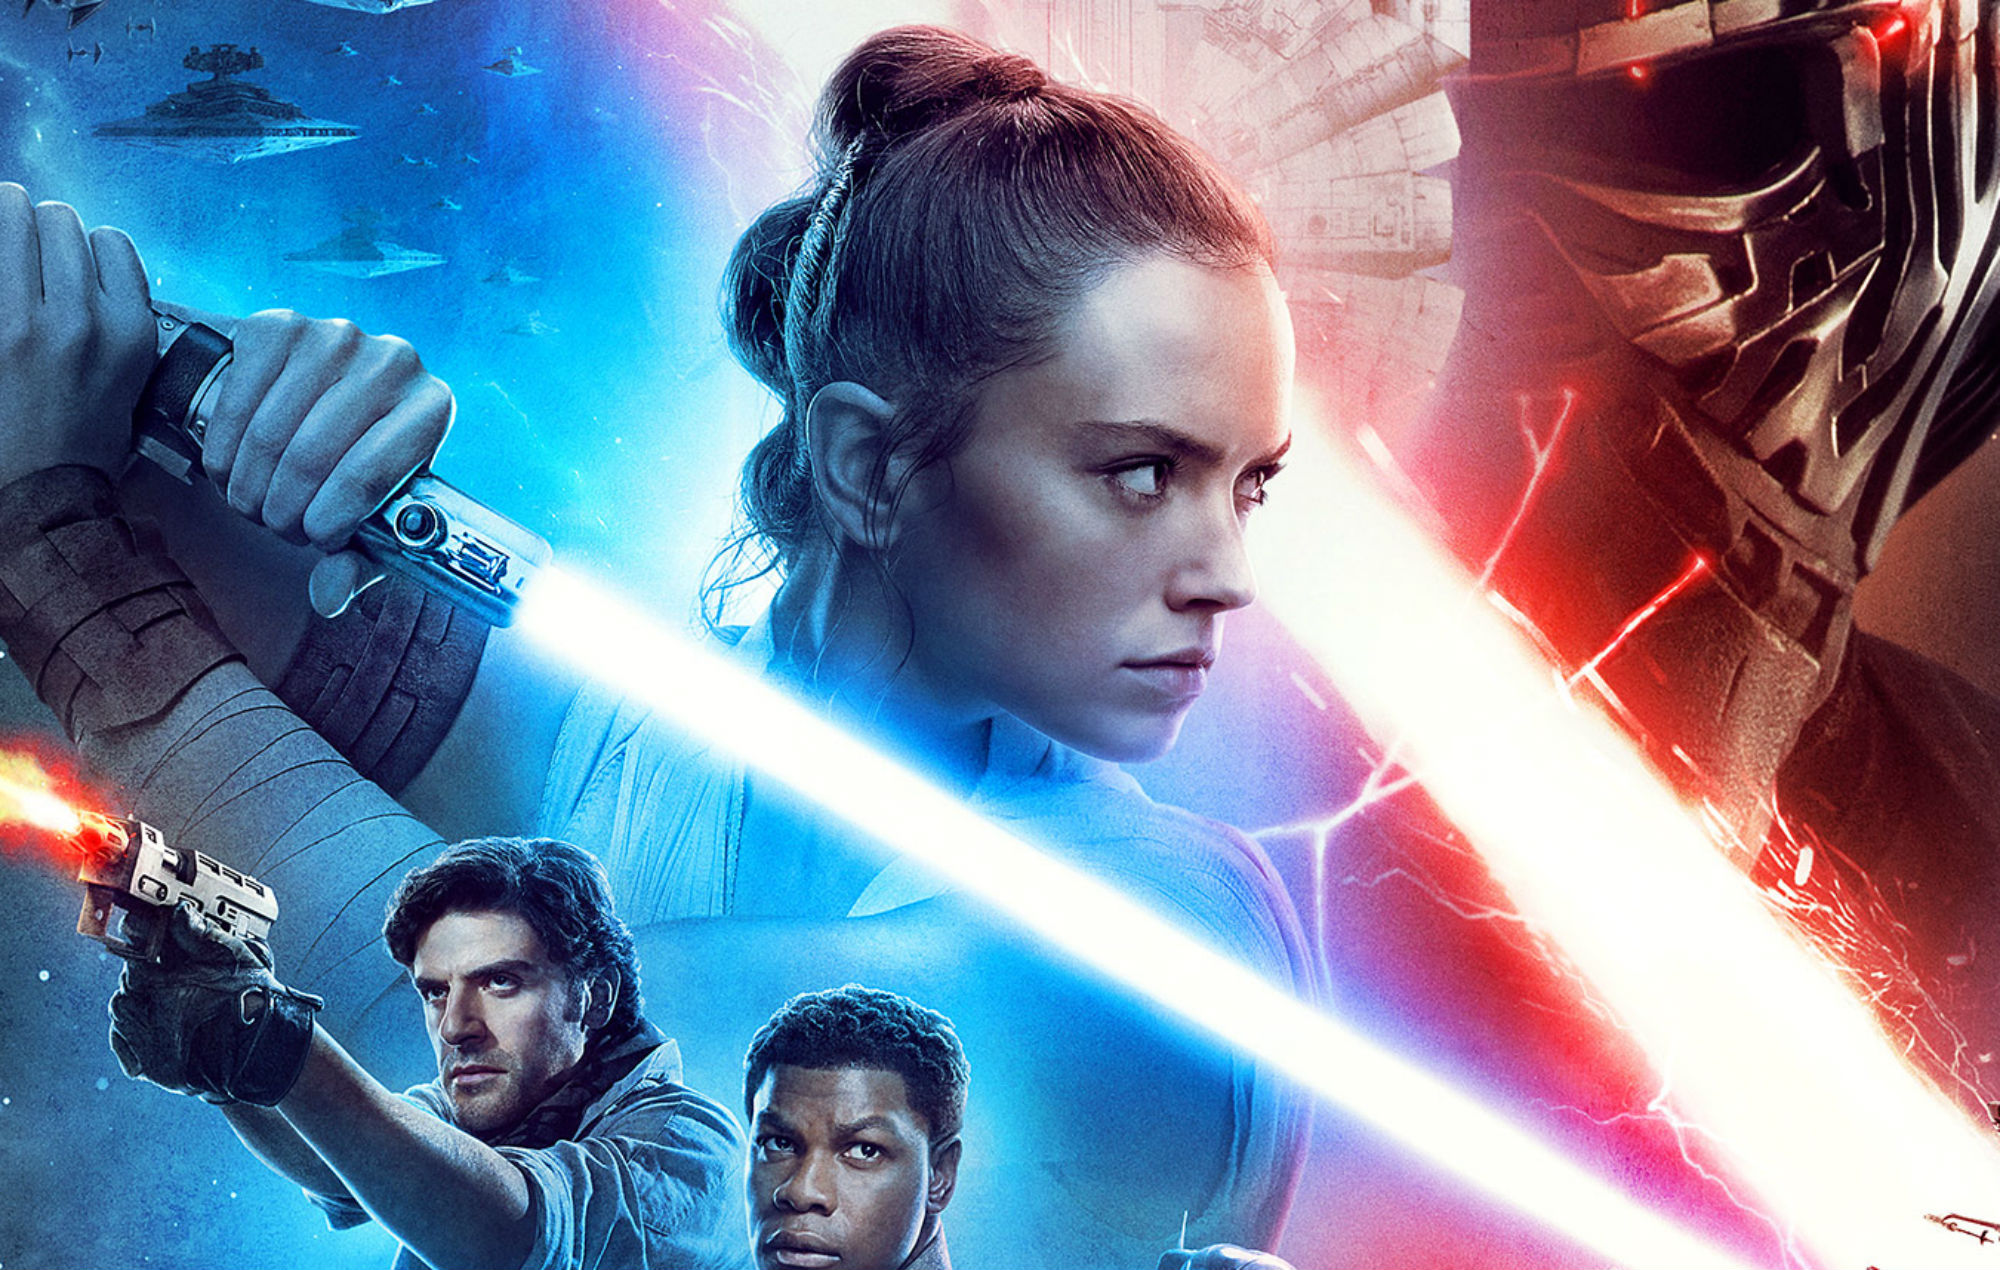 'Star Wars: The Rise of Skywalker' trailer: here's everything we learned from the new teaser